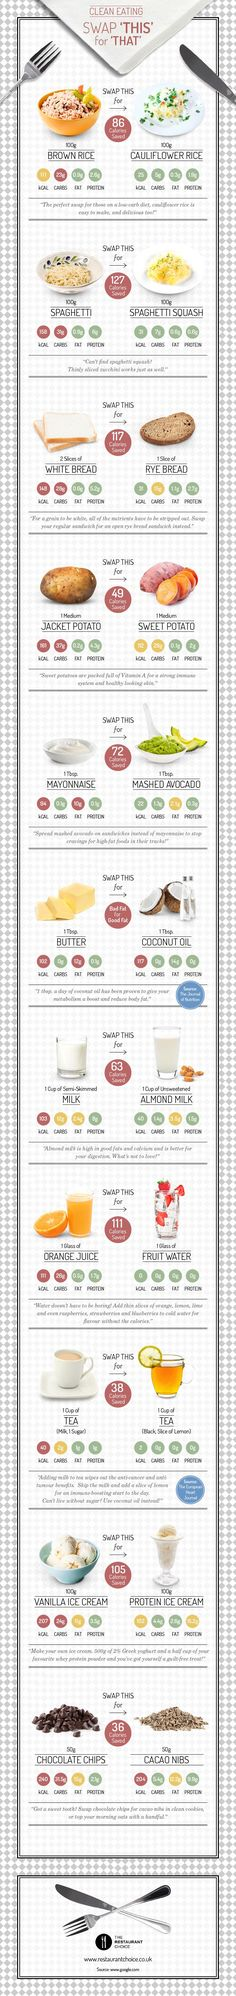 Here's a great infographic that offers up some simple food substitution suggestions to make your dishes a whole lot healthier.